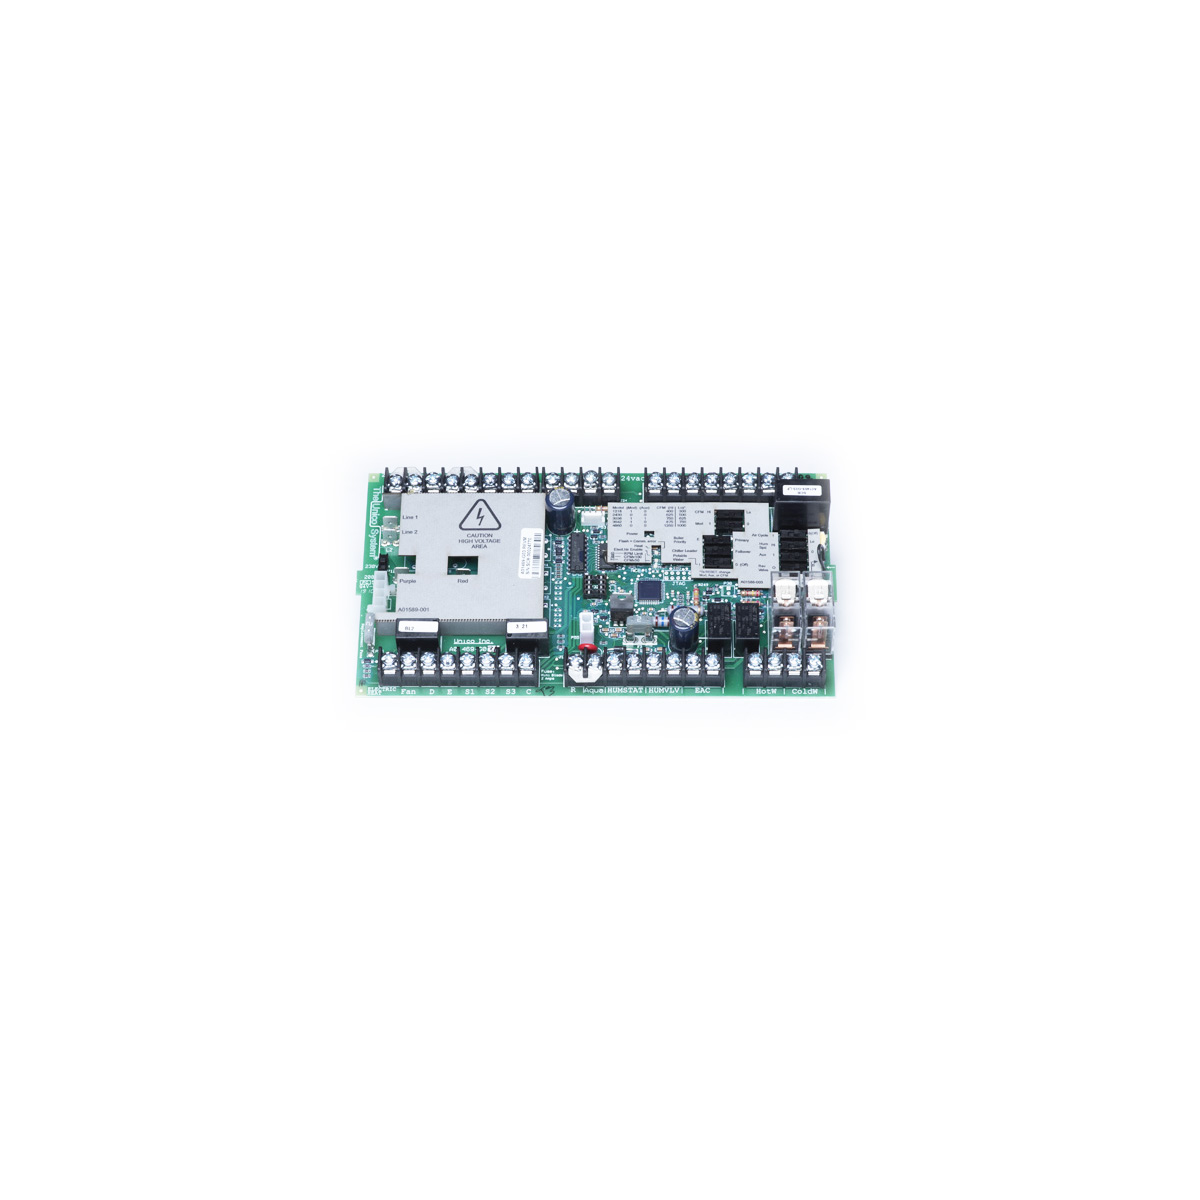 Circuit board Kit, Smart Circuit board